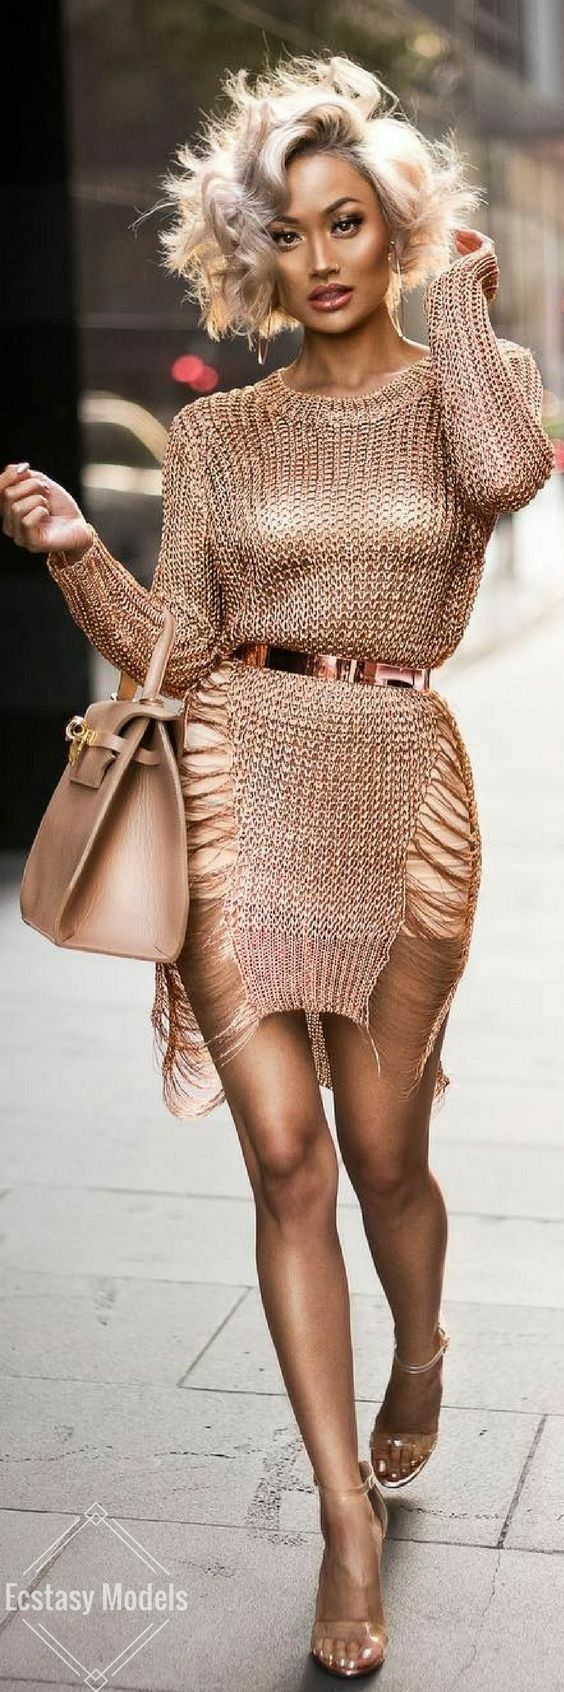 best fashion images on pinterest sewing sewing patterns and